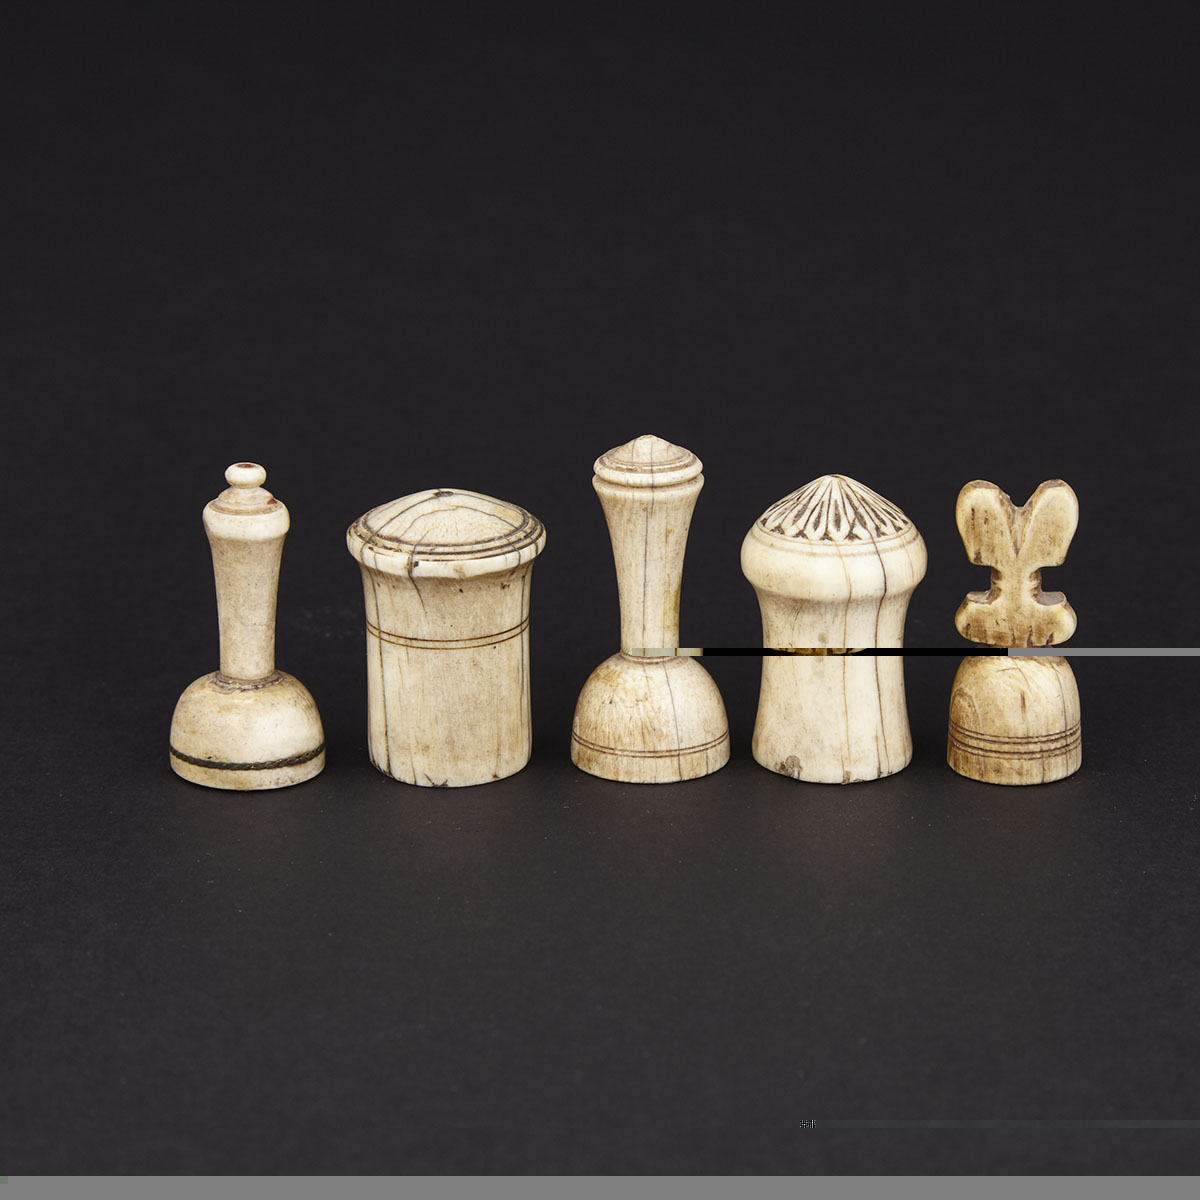 Group of Five Arab Islamic Ivory and Bone Chess Pieces, 18th century and earlier